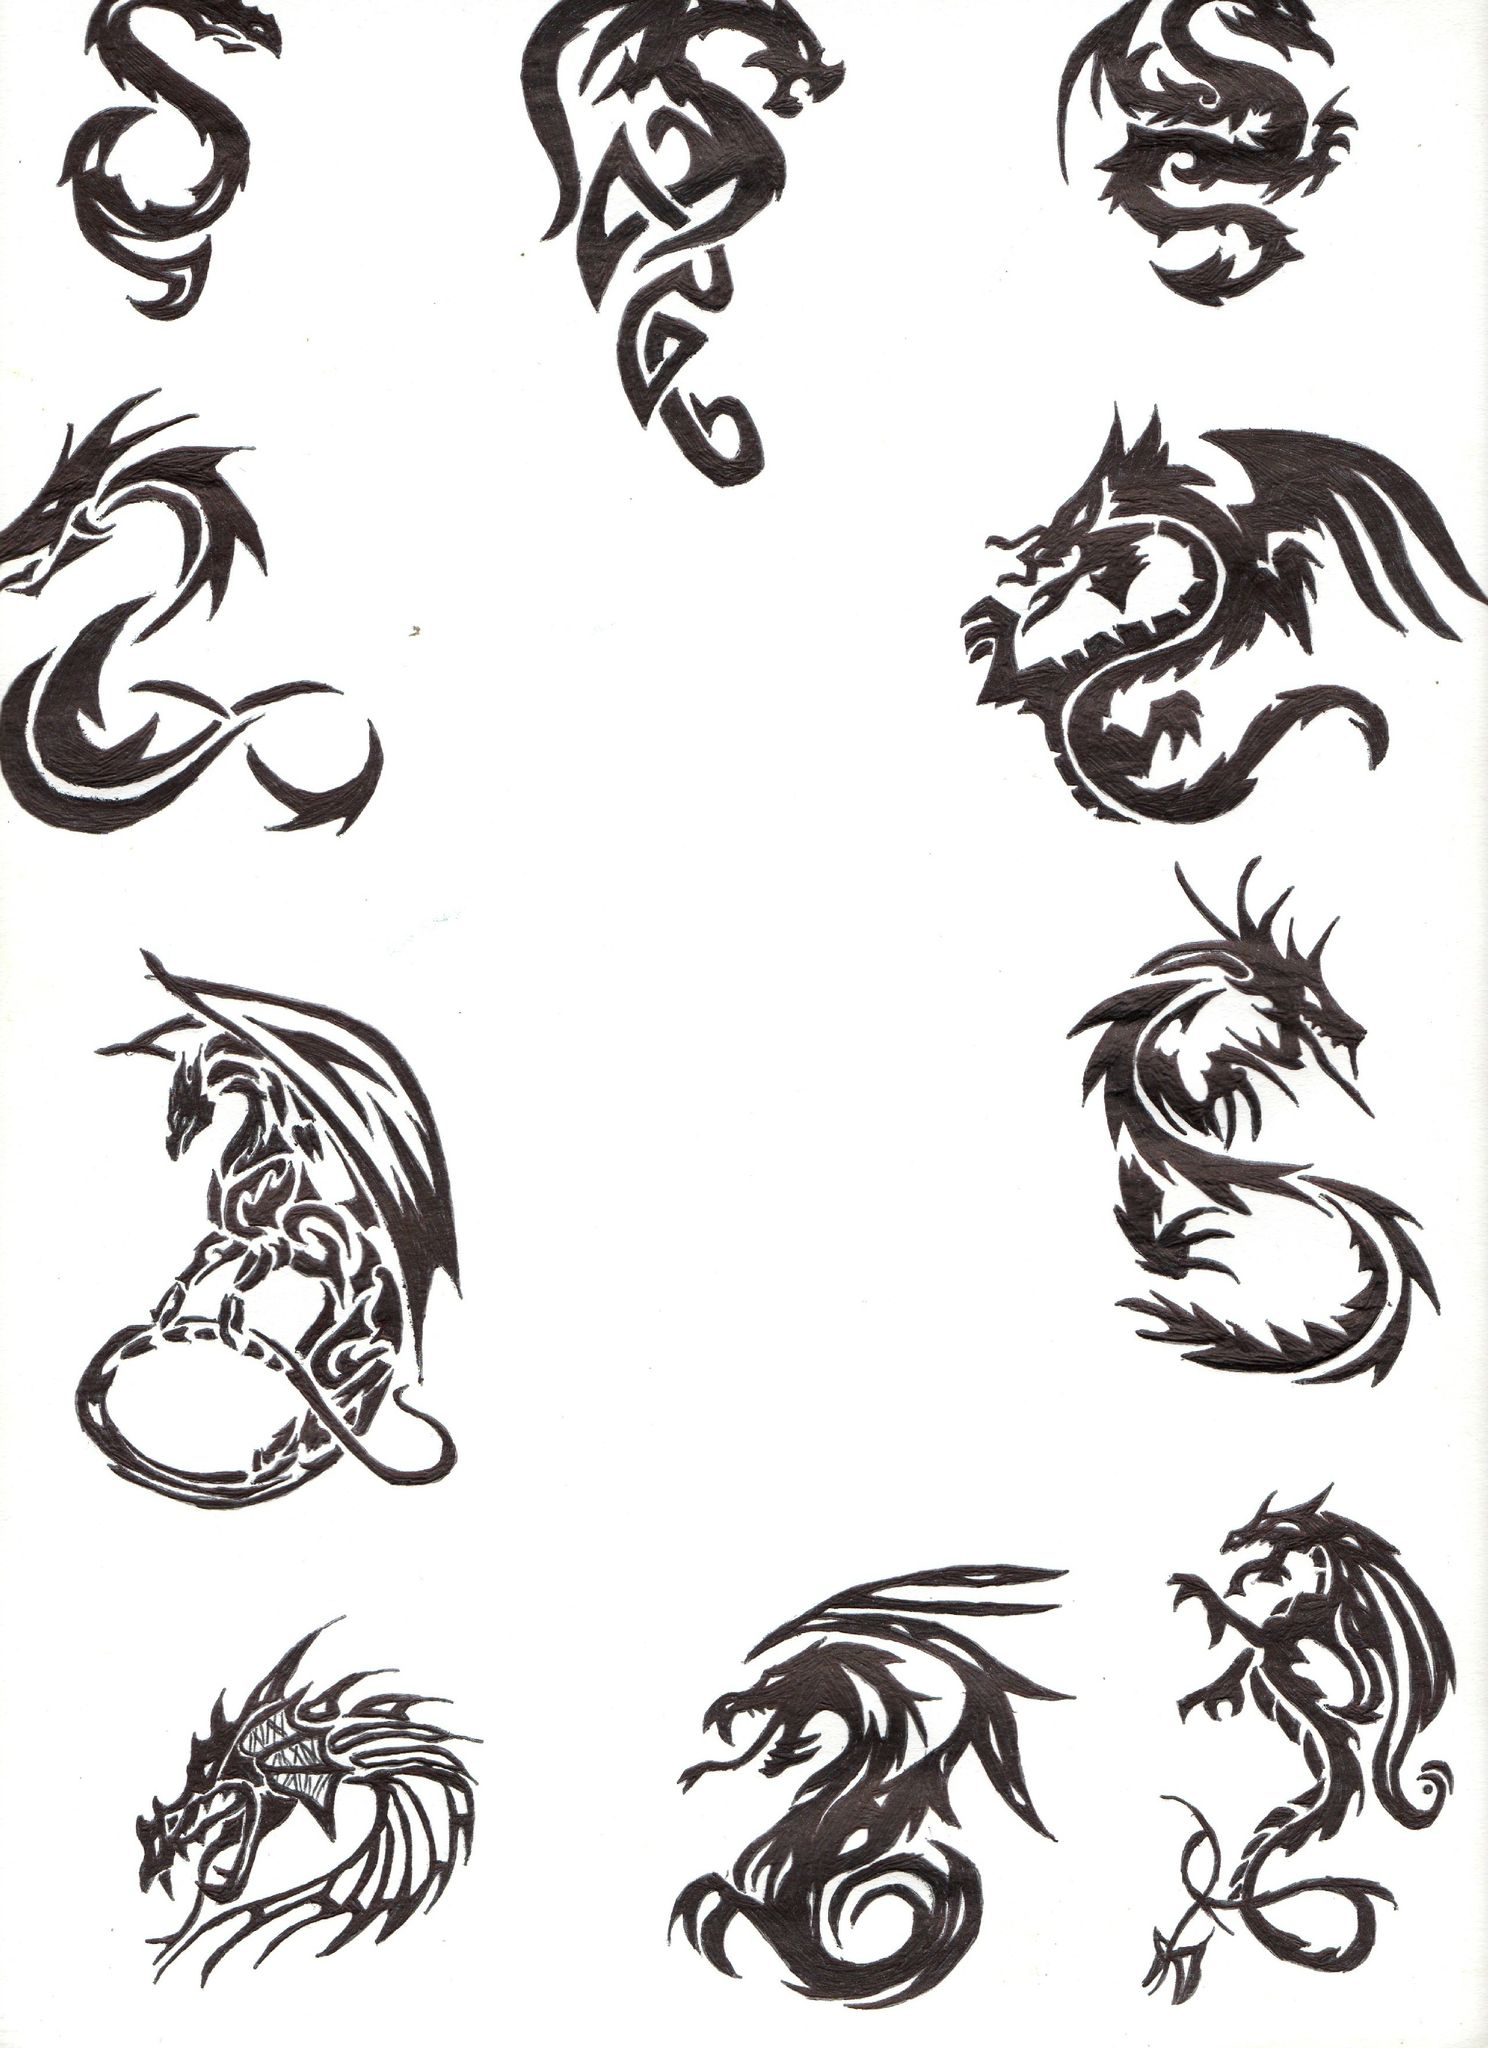 Dessins Tribaux Dragons Dessins Tribaux